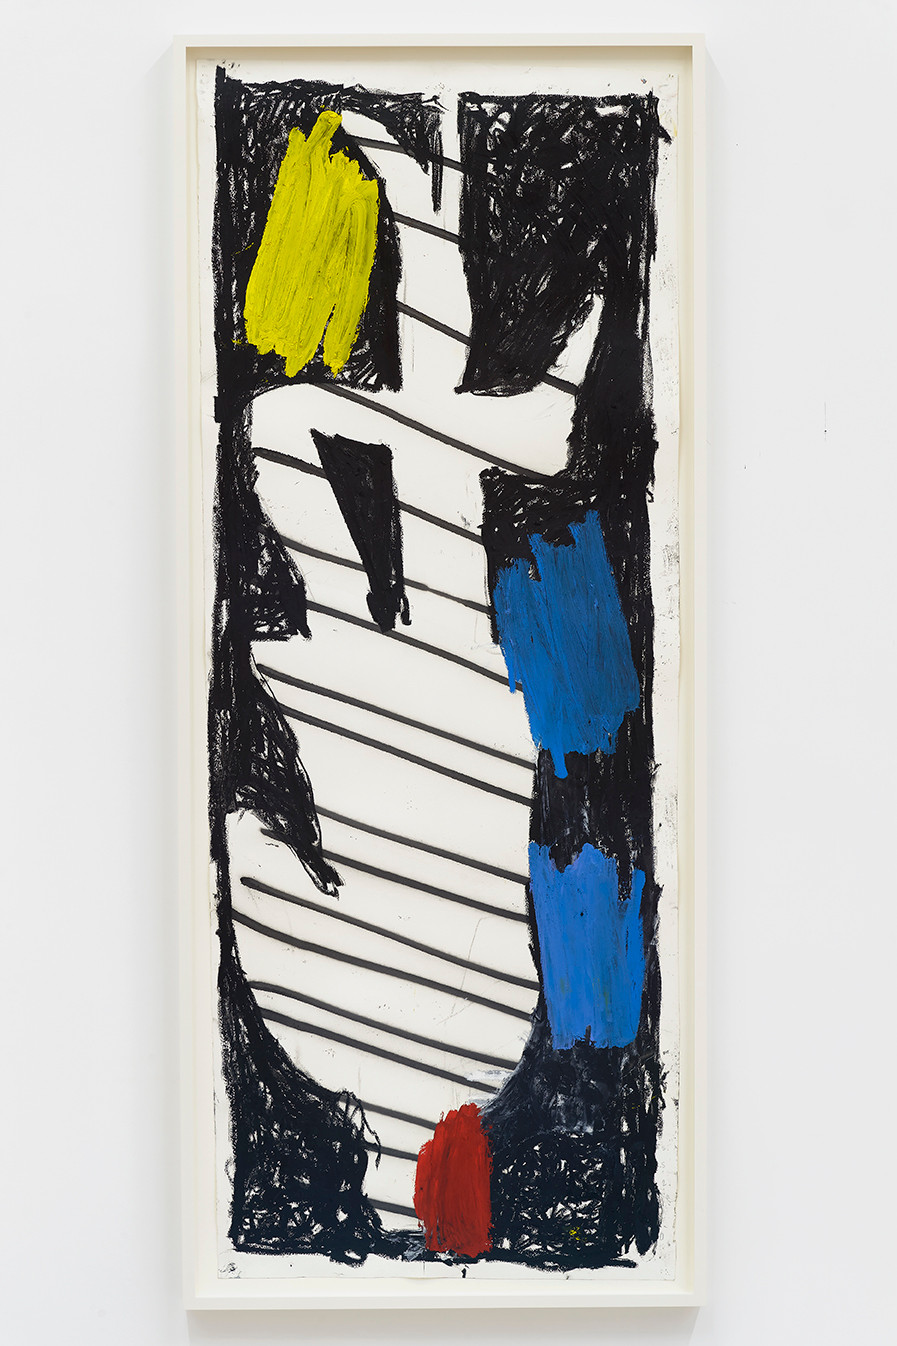 Spencer Sweeney Hanged Man #2, 2020 Oil pastel, oil stick and spray paint on paper 71 1/2 x 27 1/4 inches 74.5 x 30.75 inches (framed)